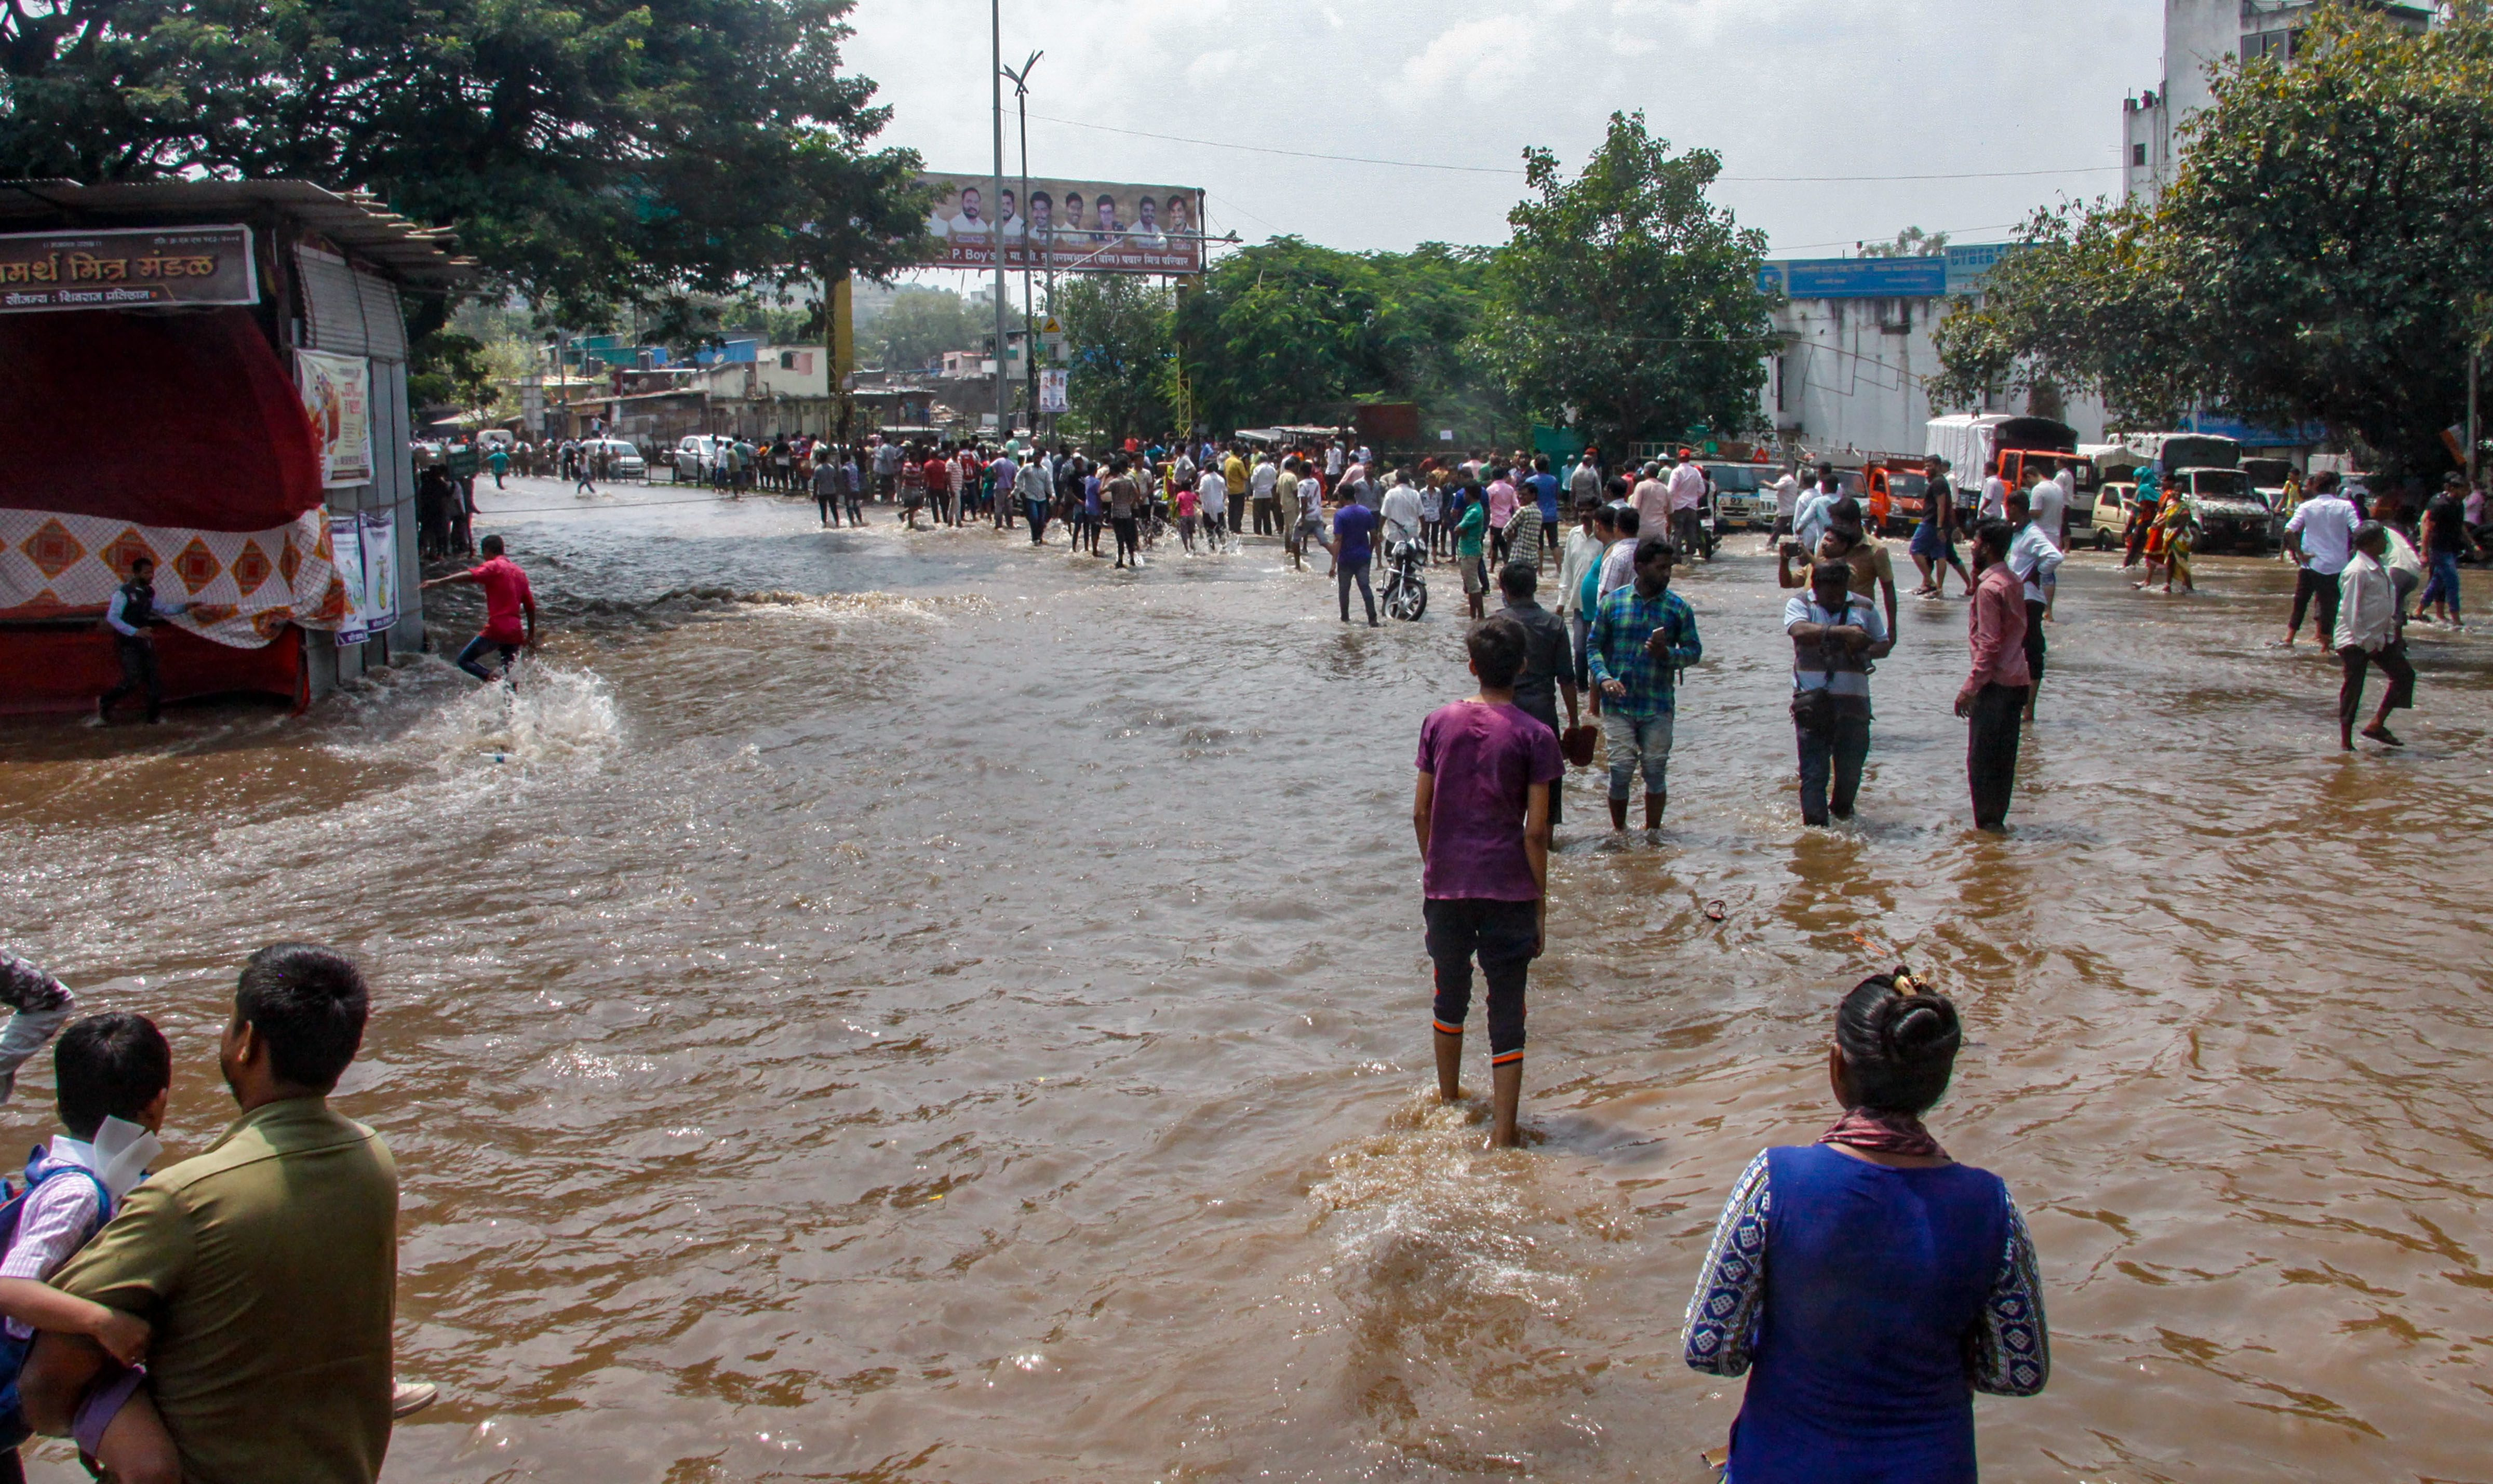 Waterlogging at a road after a breach occurred in a wall of the Mutha canal near Dandekar bridge in Pune on Thursday. PTI